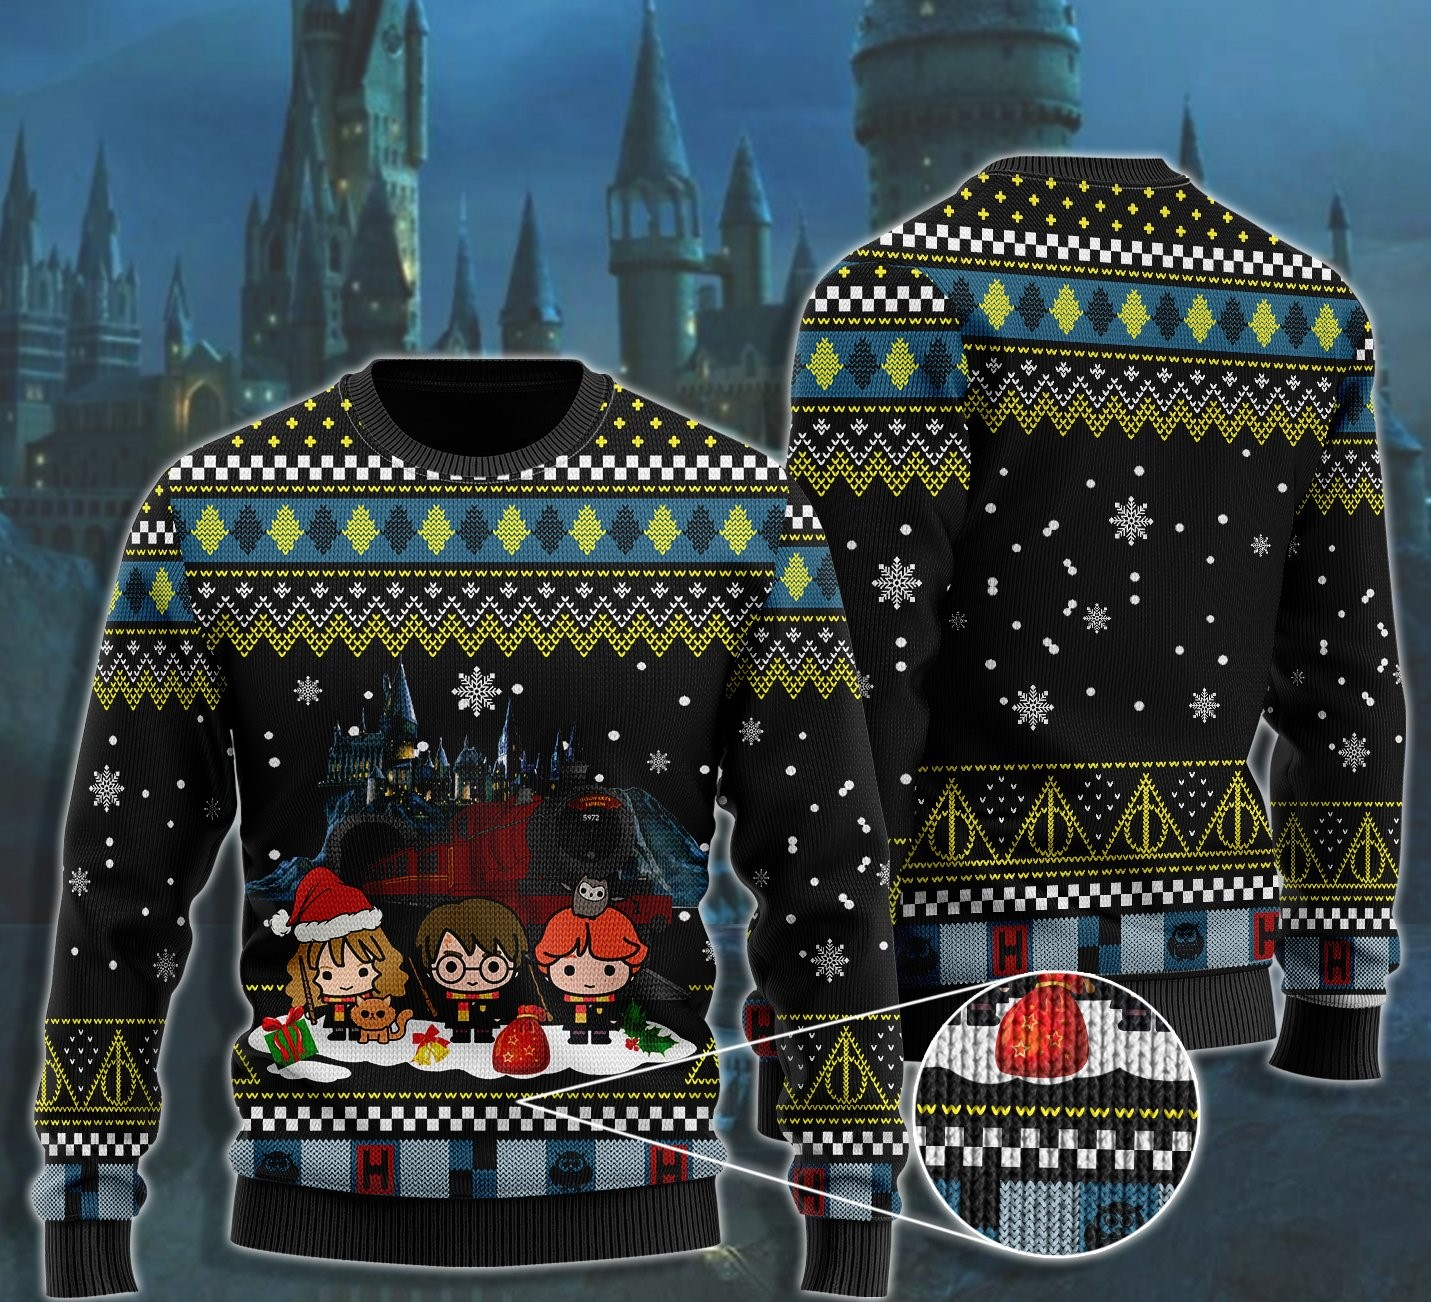 merry christmas with harry potter chibi ugly christmas sweater 2 - Copy (2)